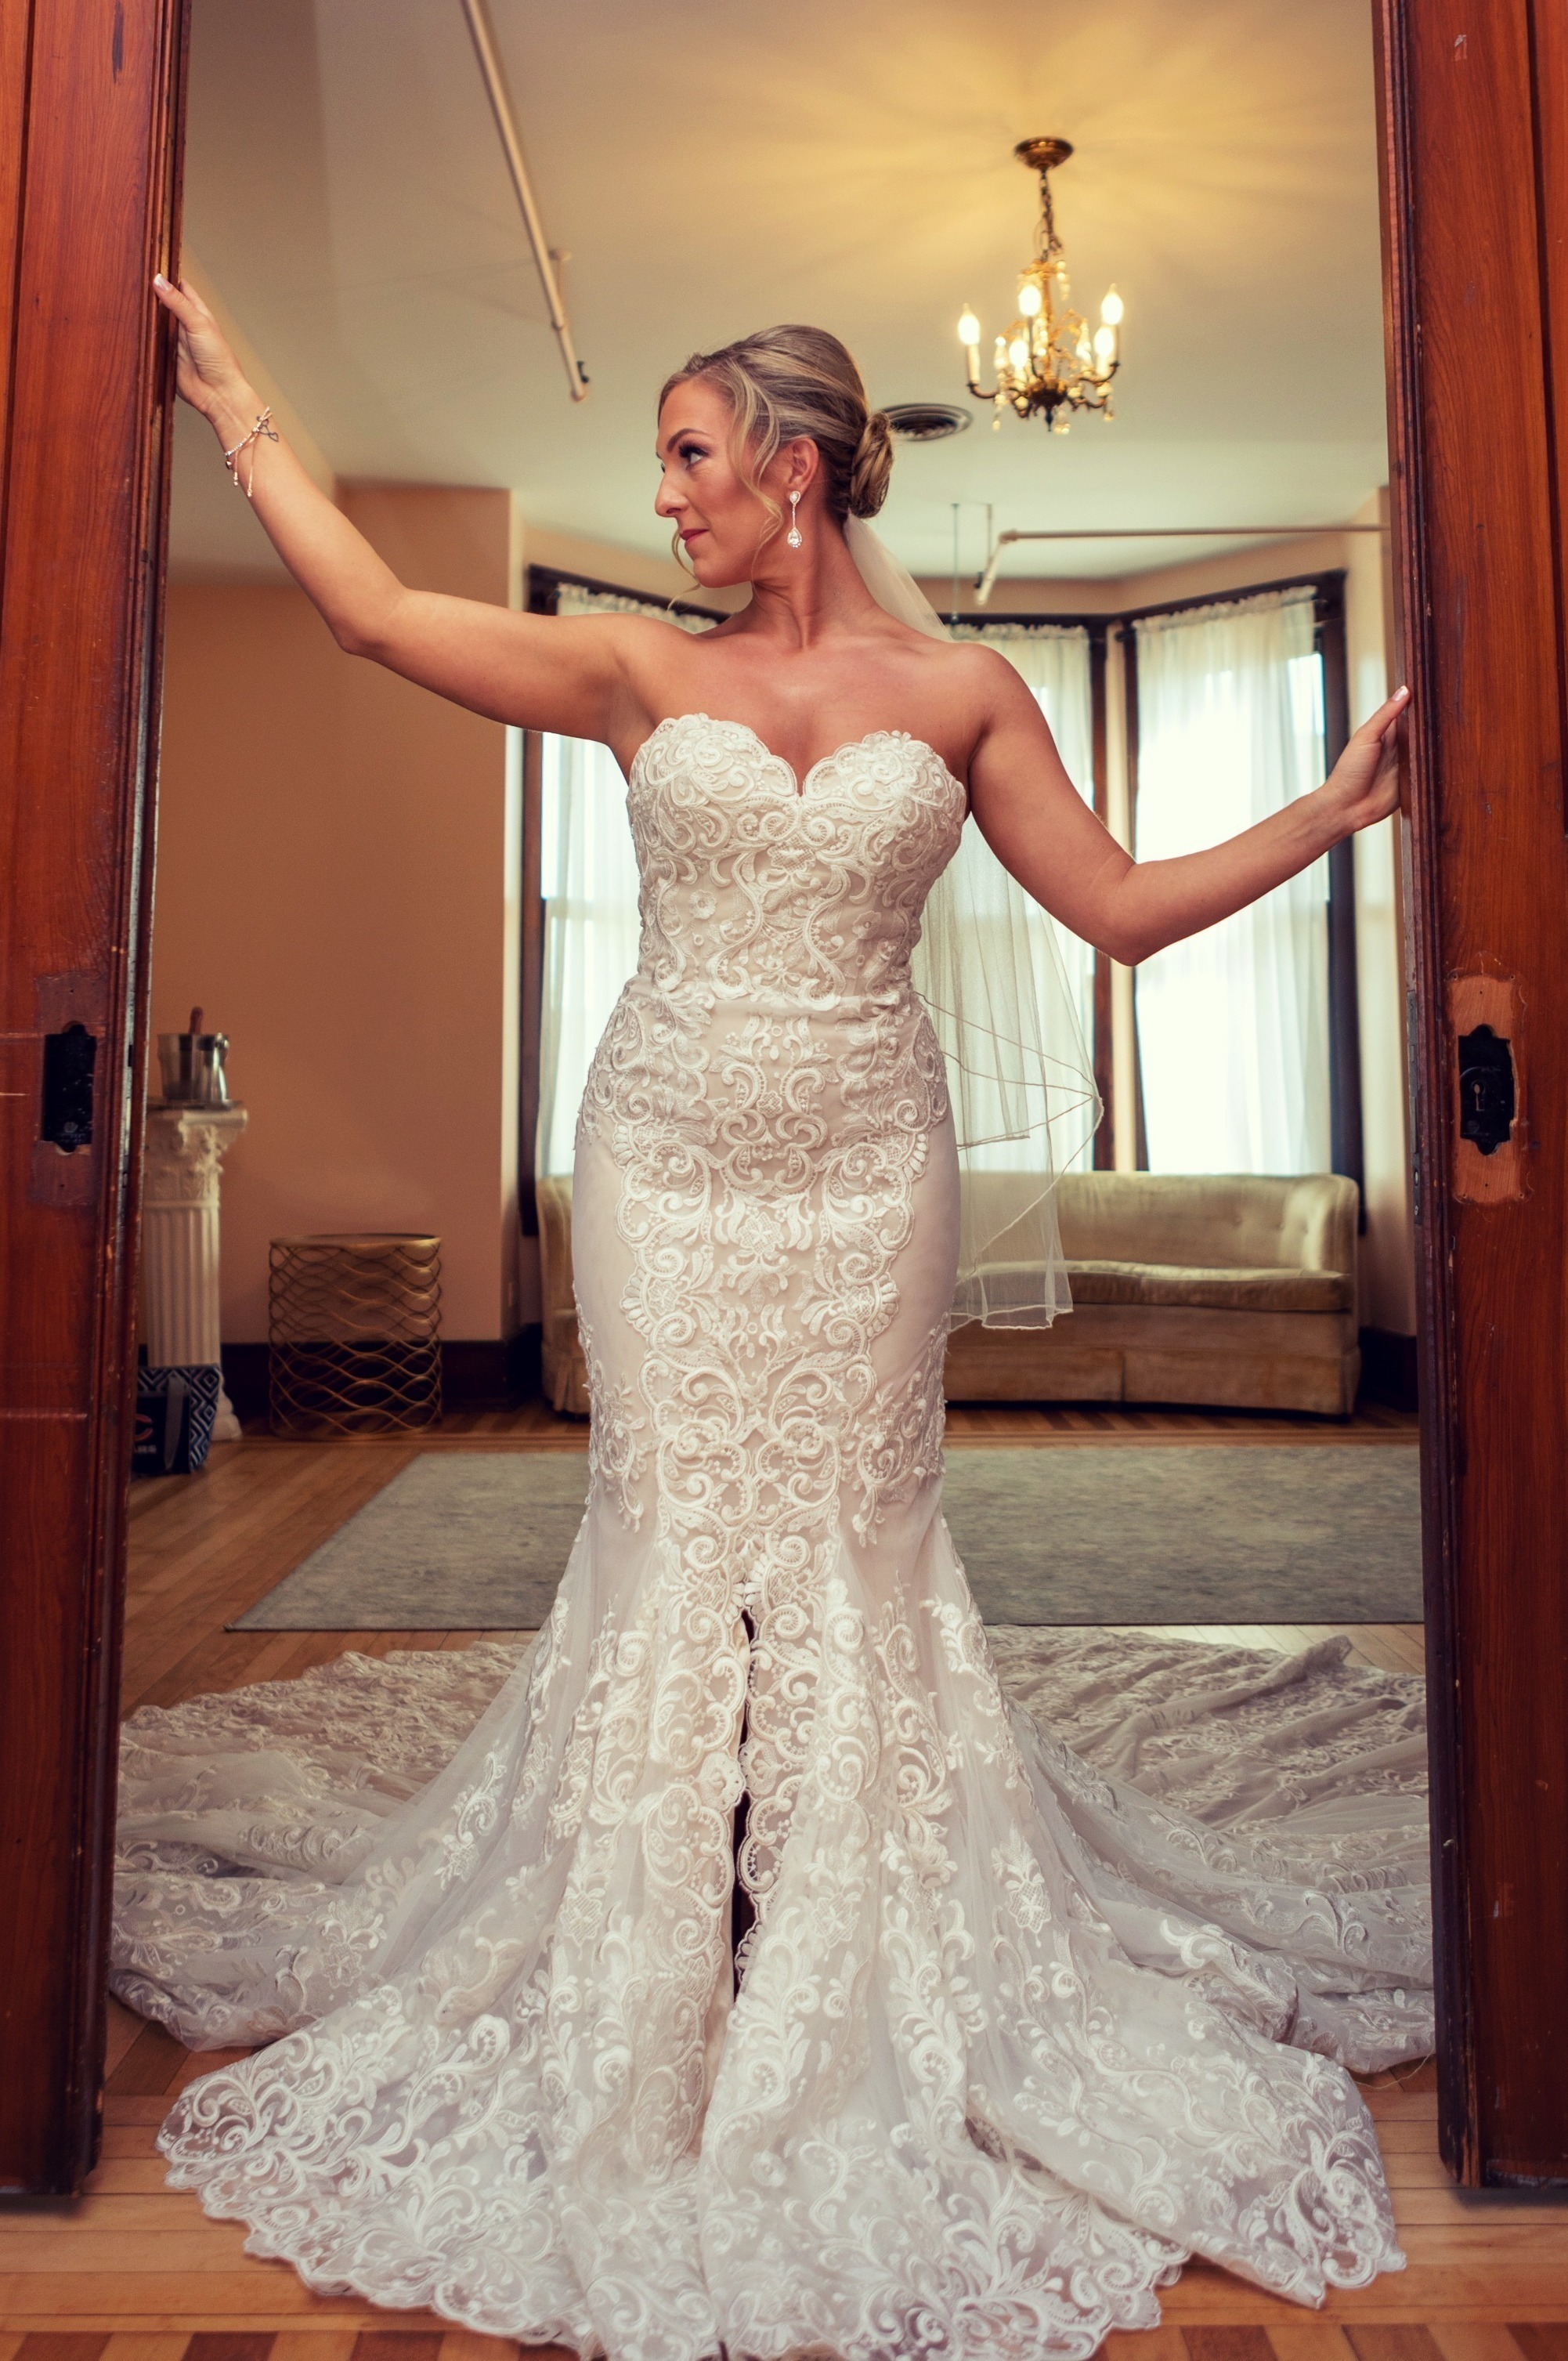 Bride customized her wedding dress with Anomalie Online Wedding Dresses with sweetheart neckline, center slit, and dramatic train.